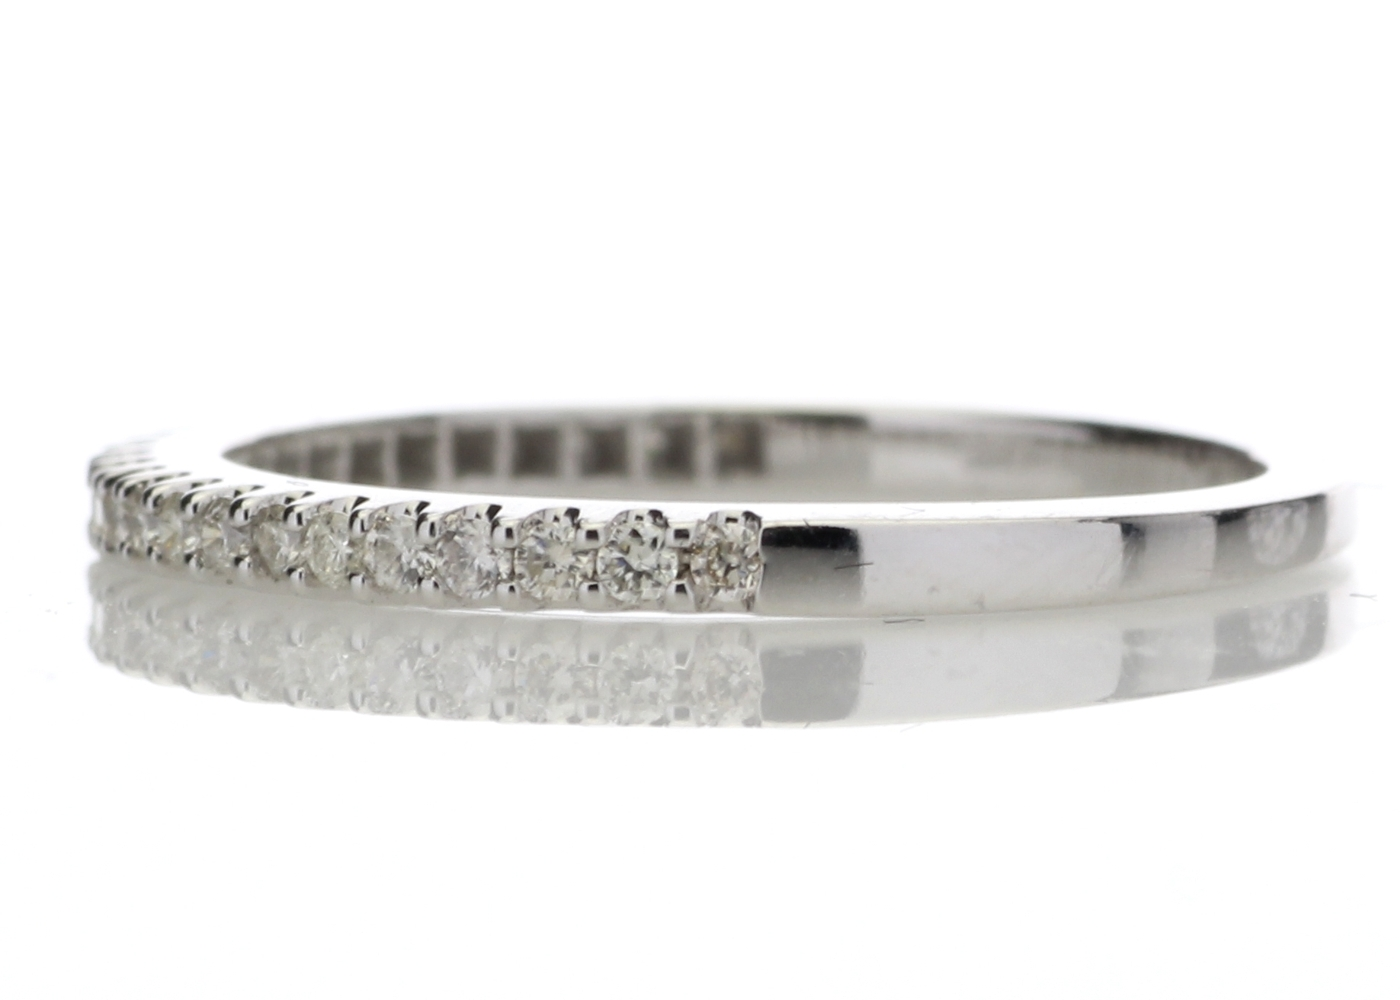 Lot 54 - 9ct White Gold Diamond Half Eternity Ring 0.25 Carats